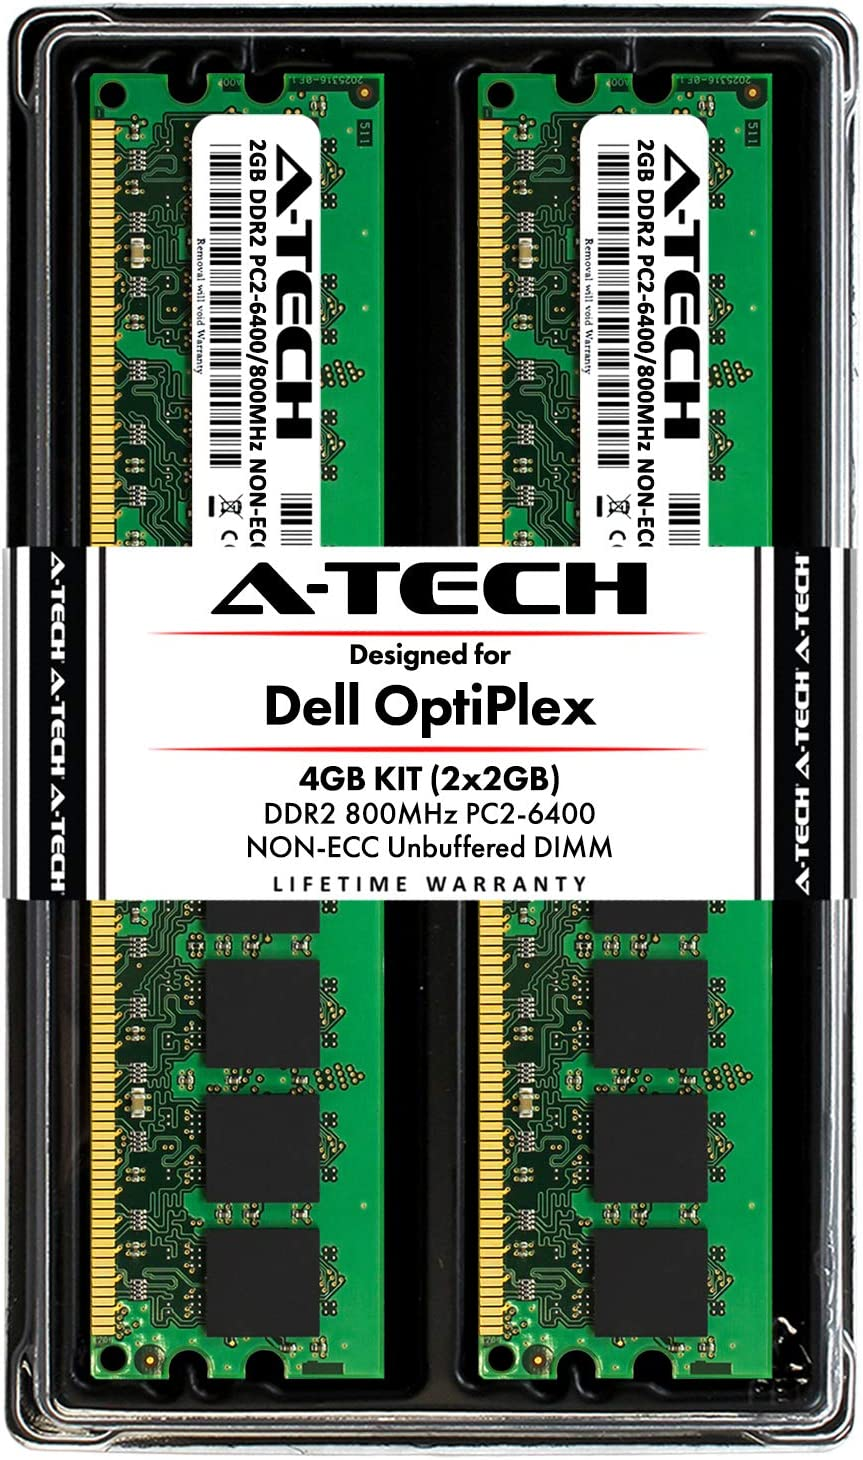 4GB 2x2GB Dell OptiPlex FX160 RAM Memory DDR2